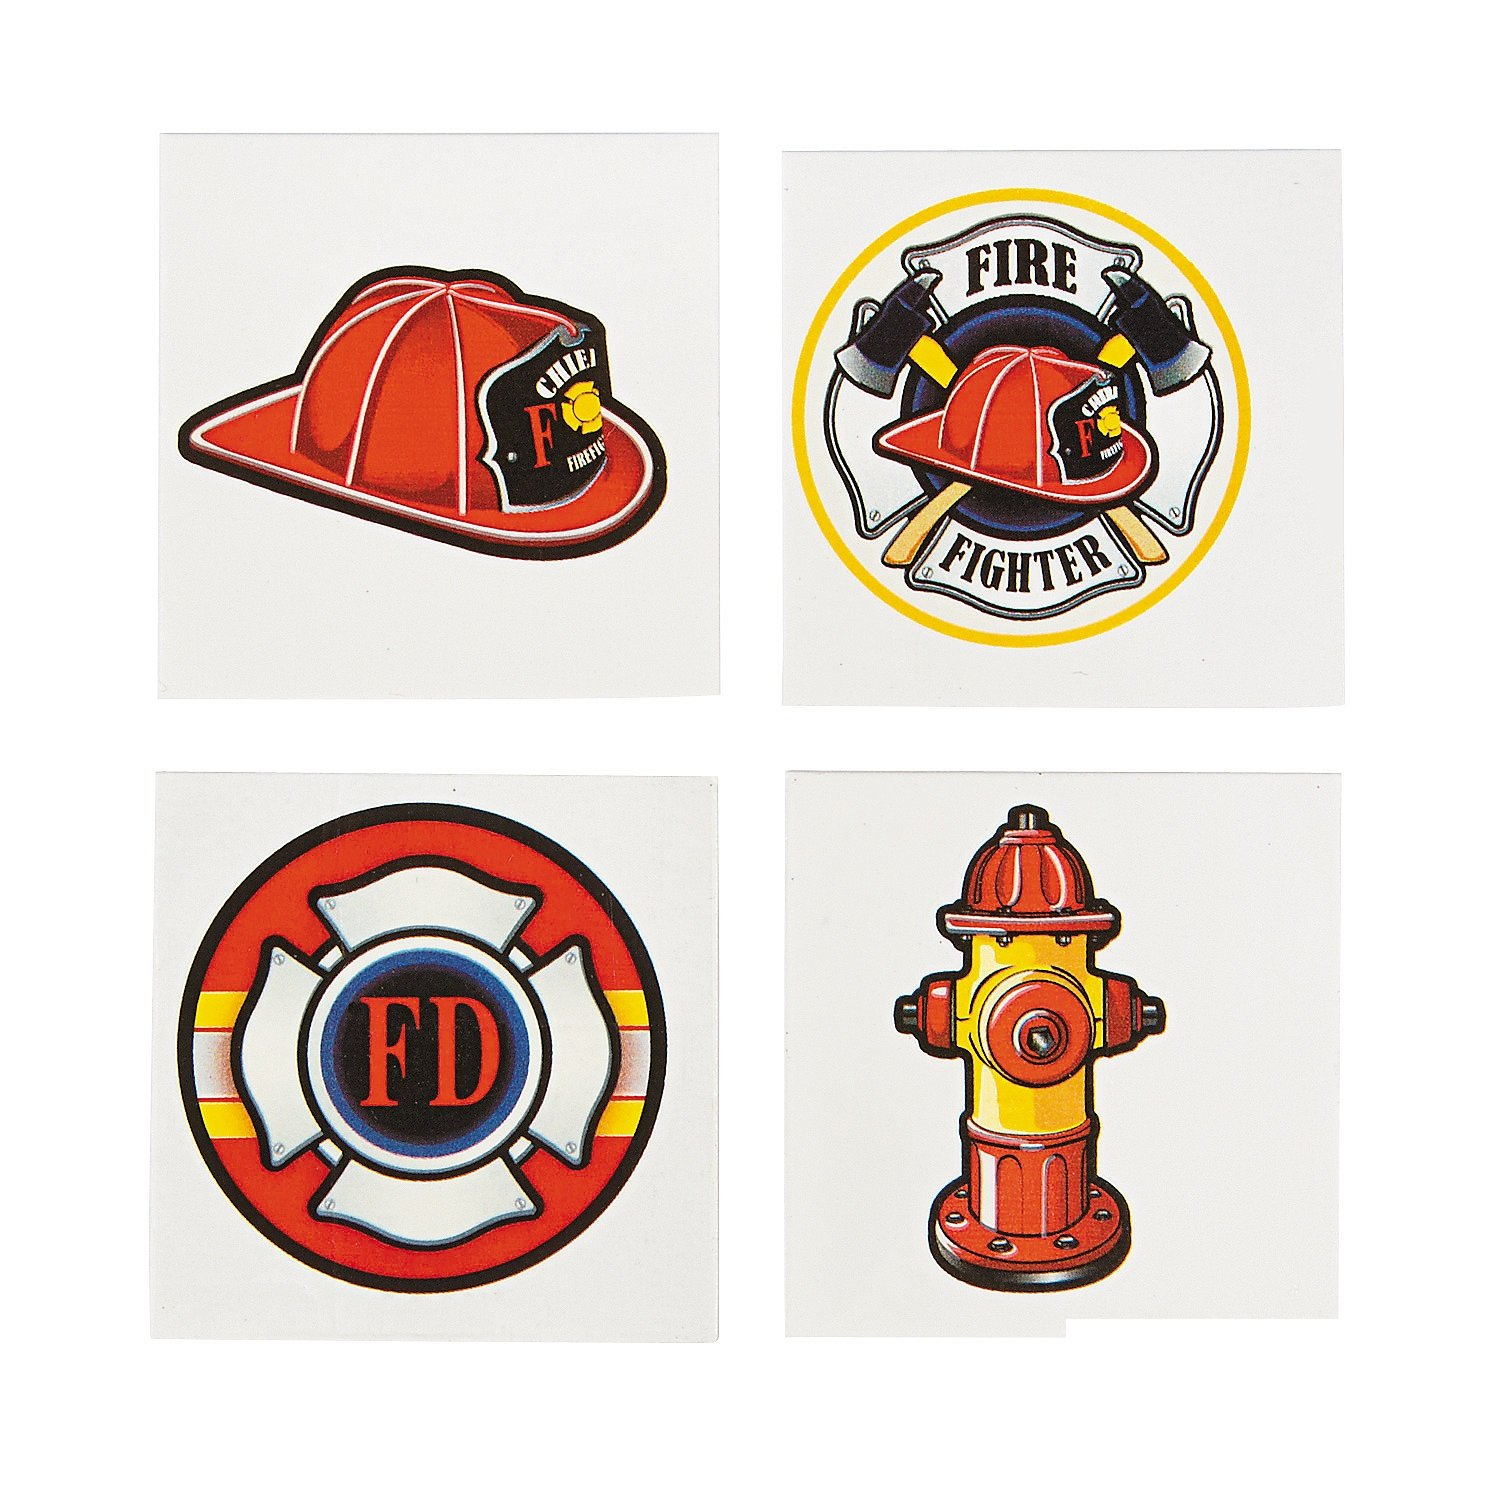 Firefighter Tattoos - 72 pcs